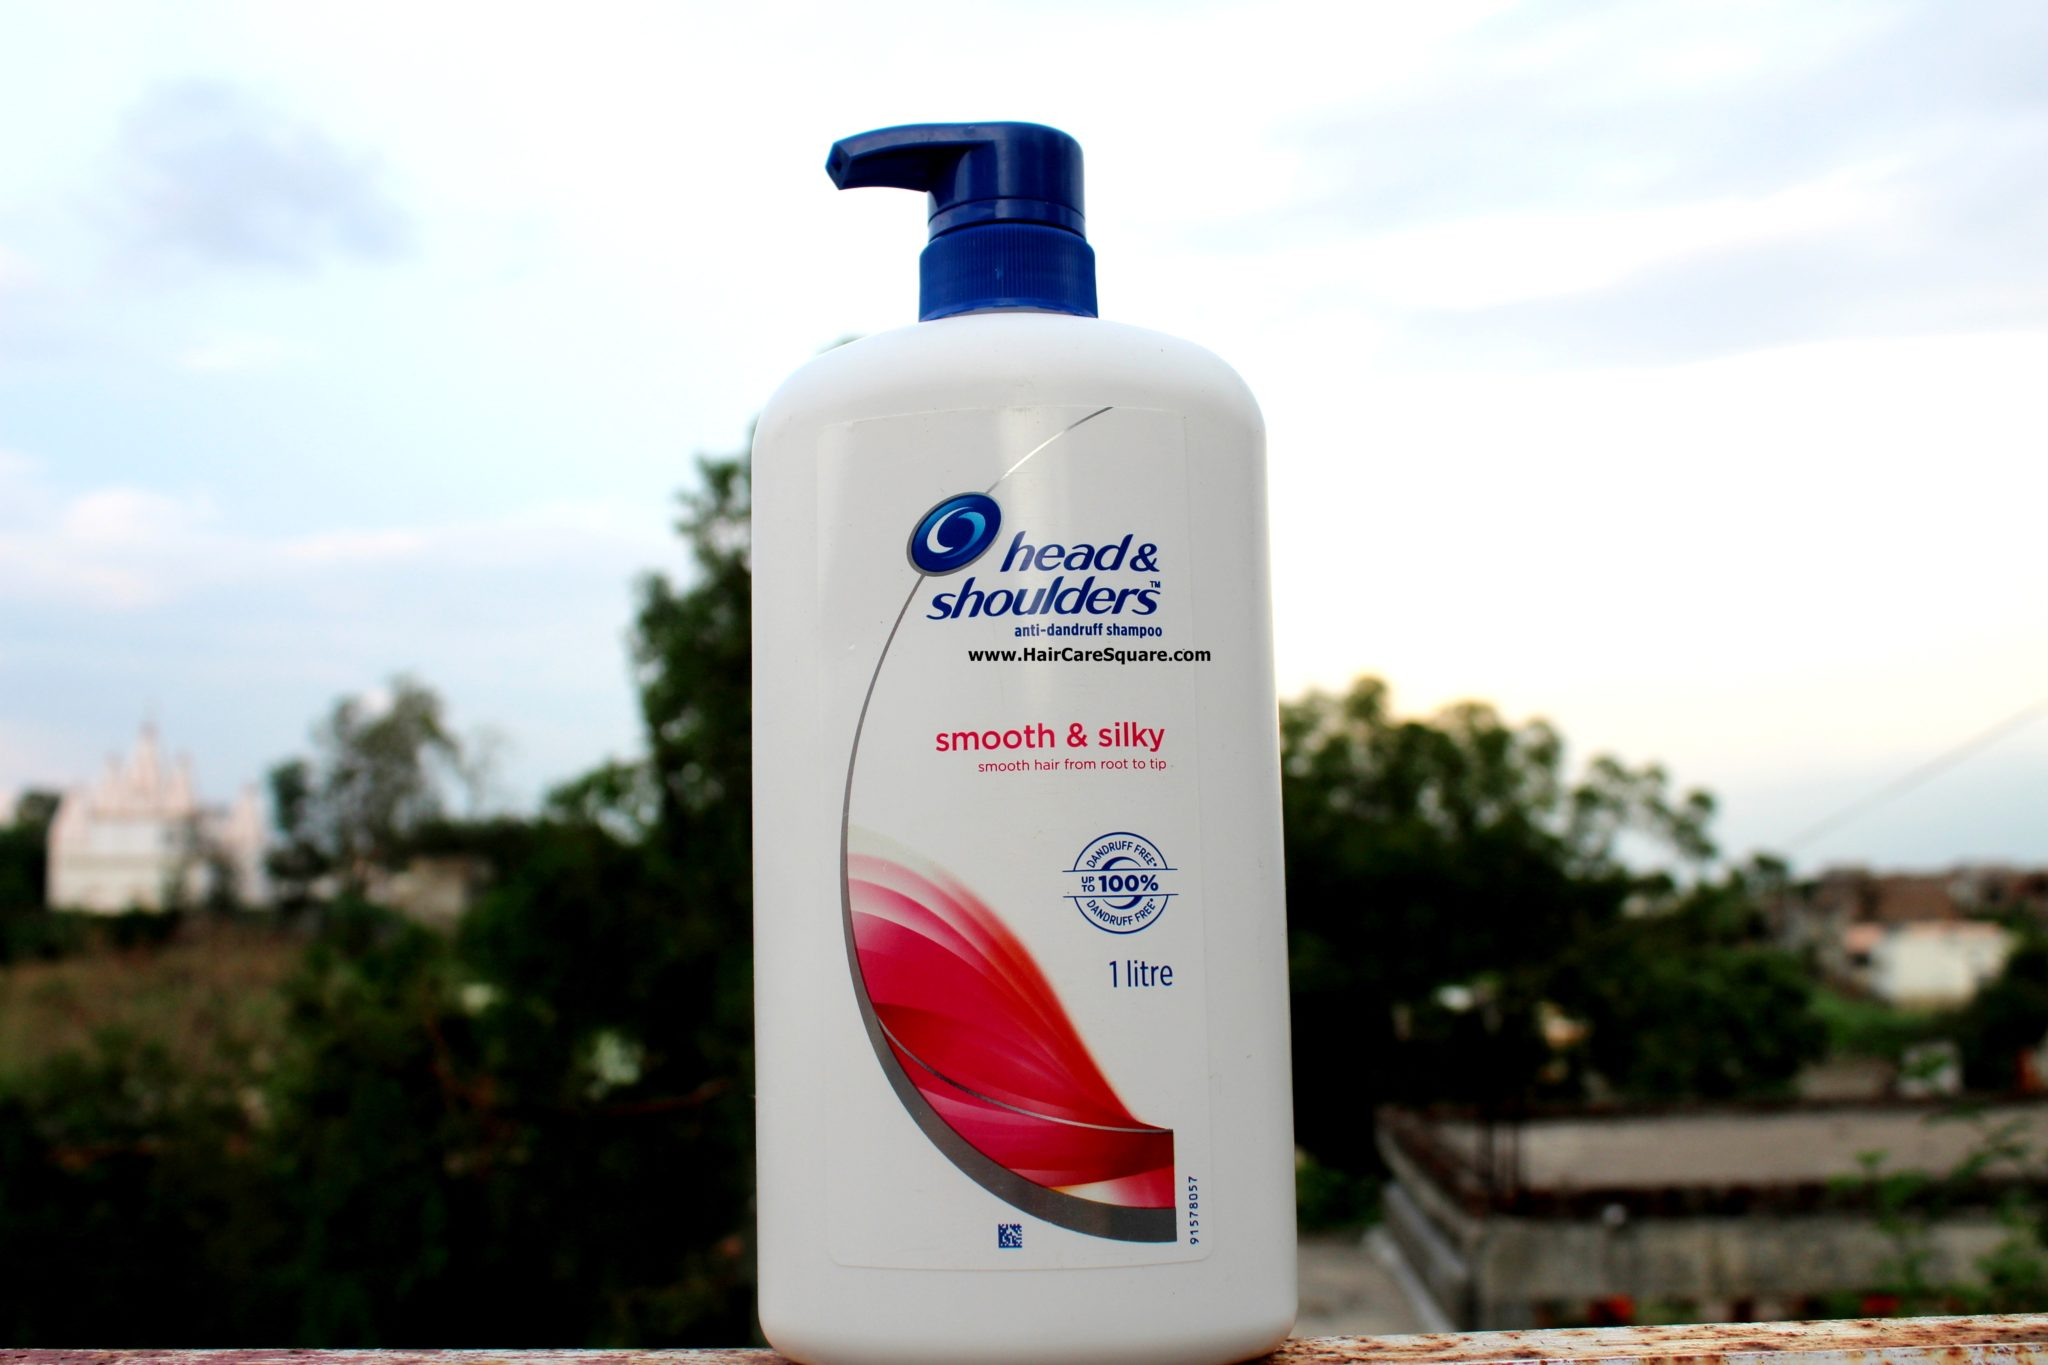 Head & Shoulders Smooth and Silky anti-Dandruff Shampoo review